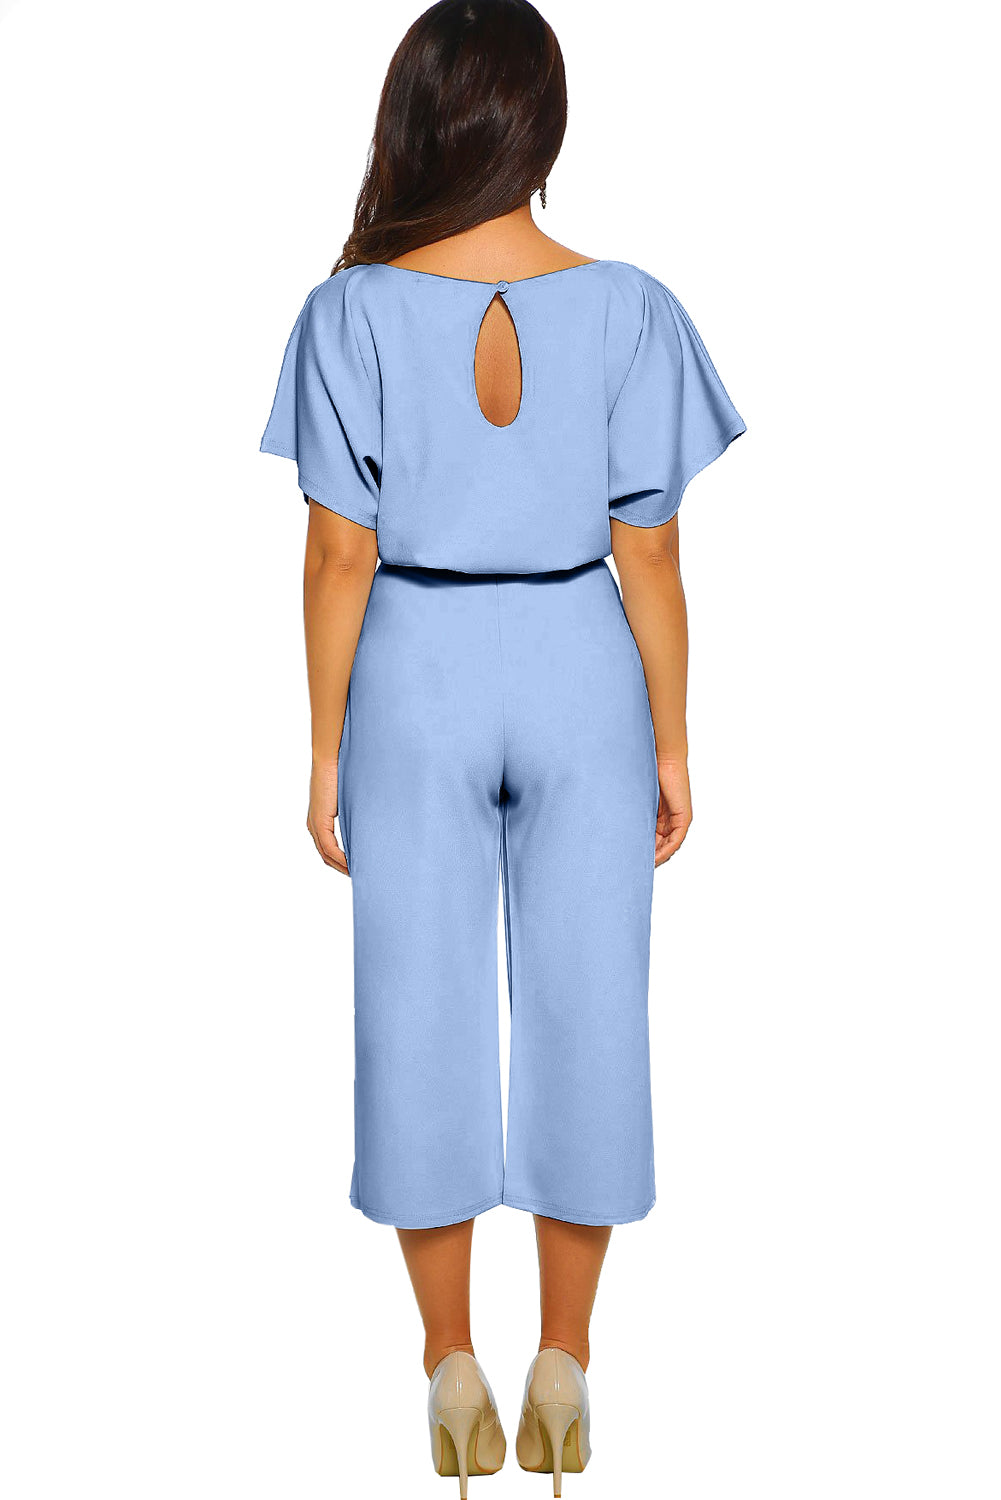 Sky Blue Always Chic Belted Culotte Jumpsuit